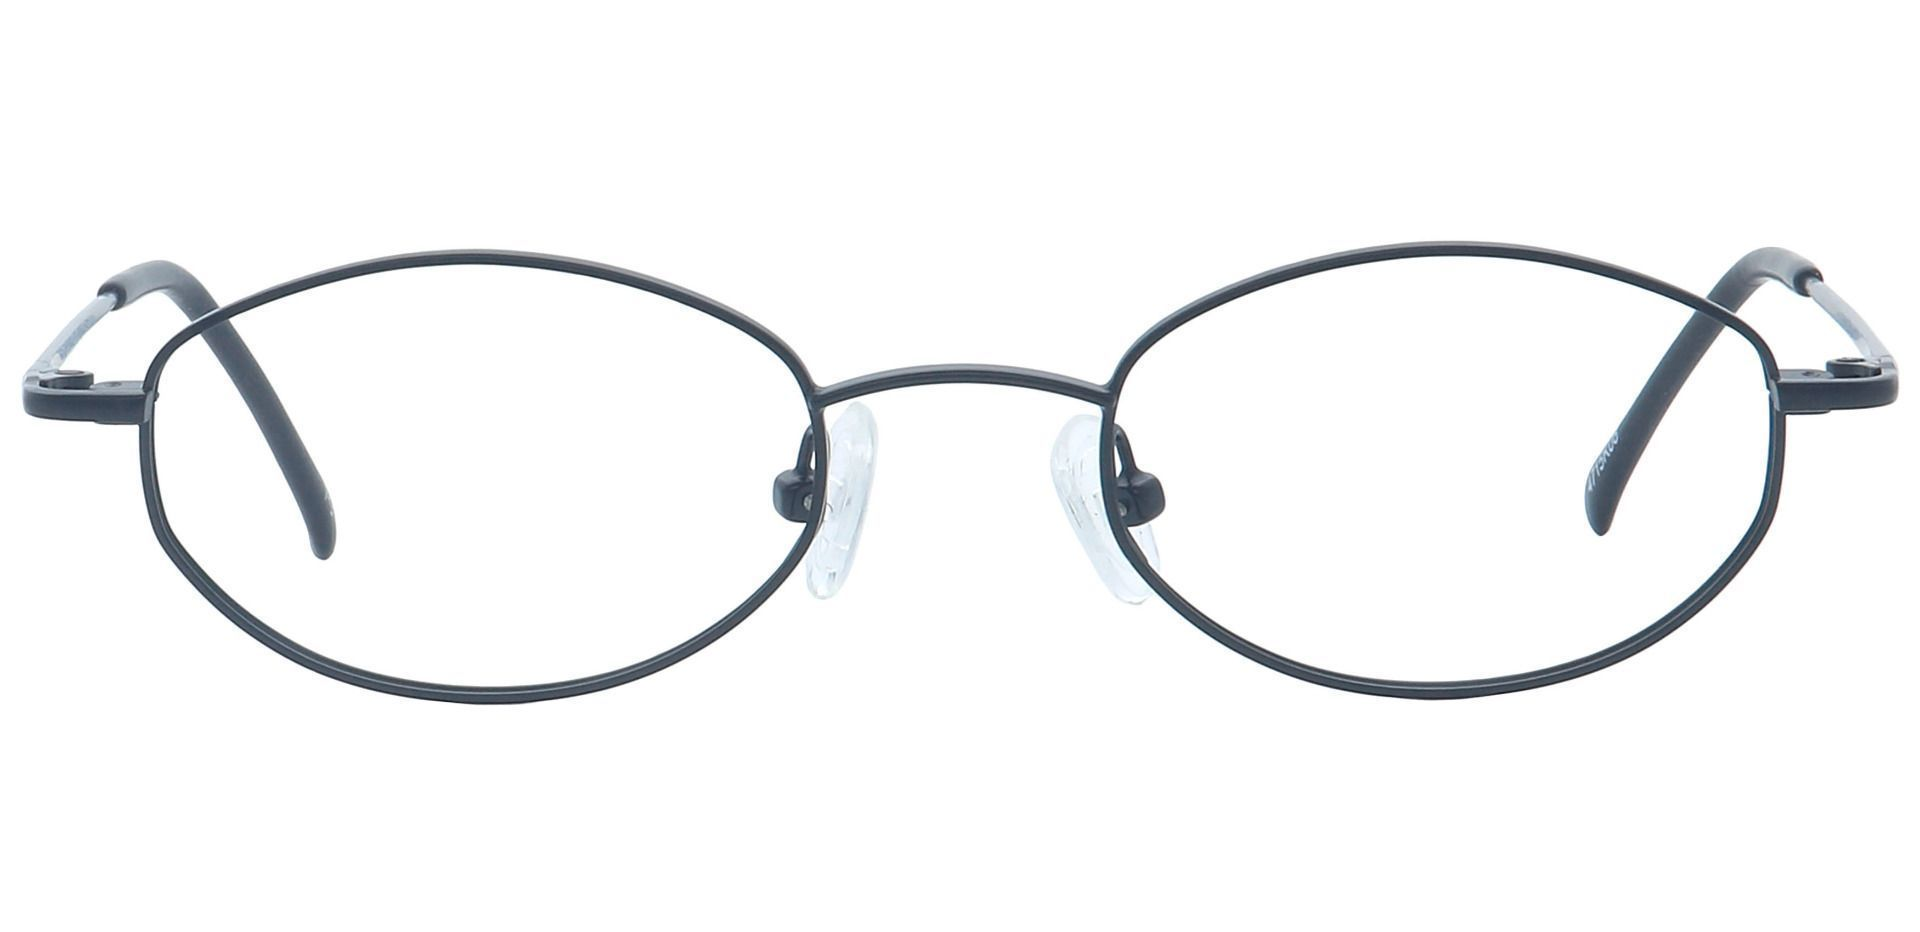 Odion Oval Single Vision Glasses - Black